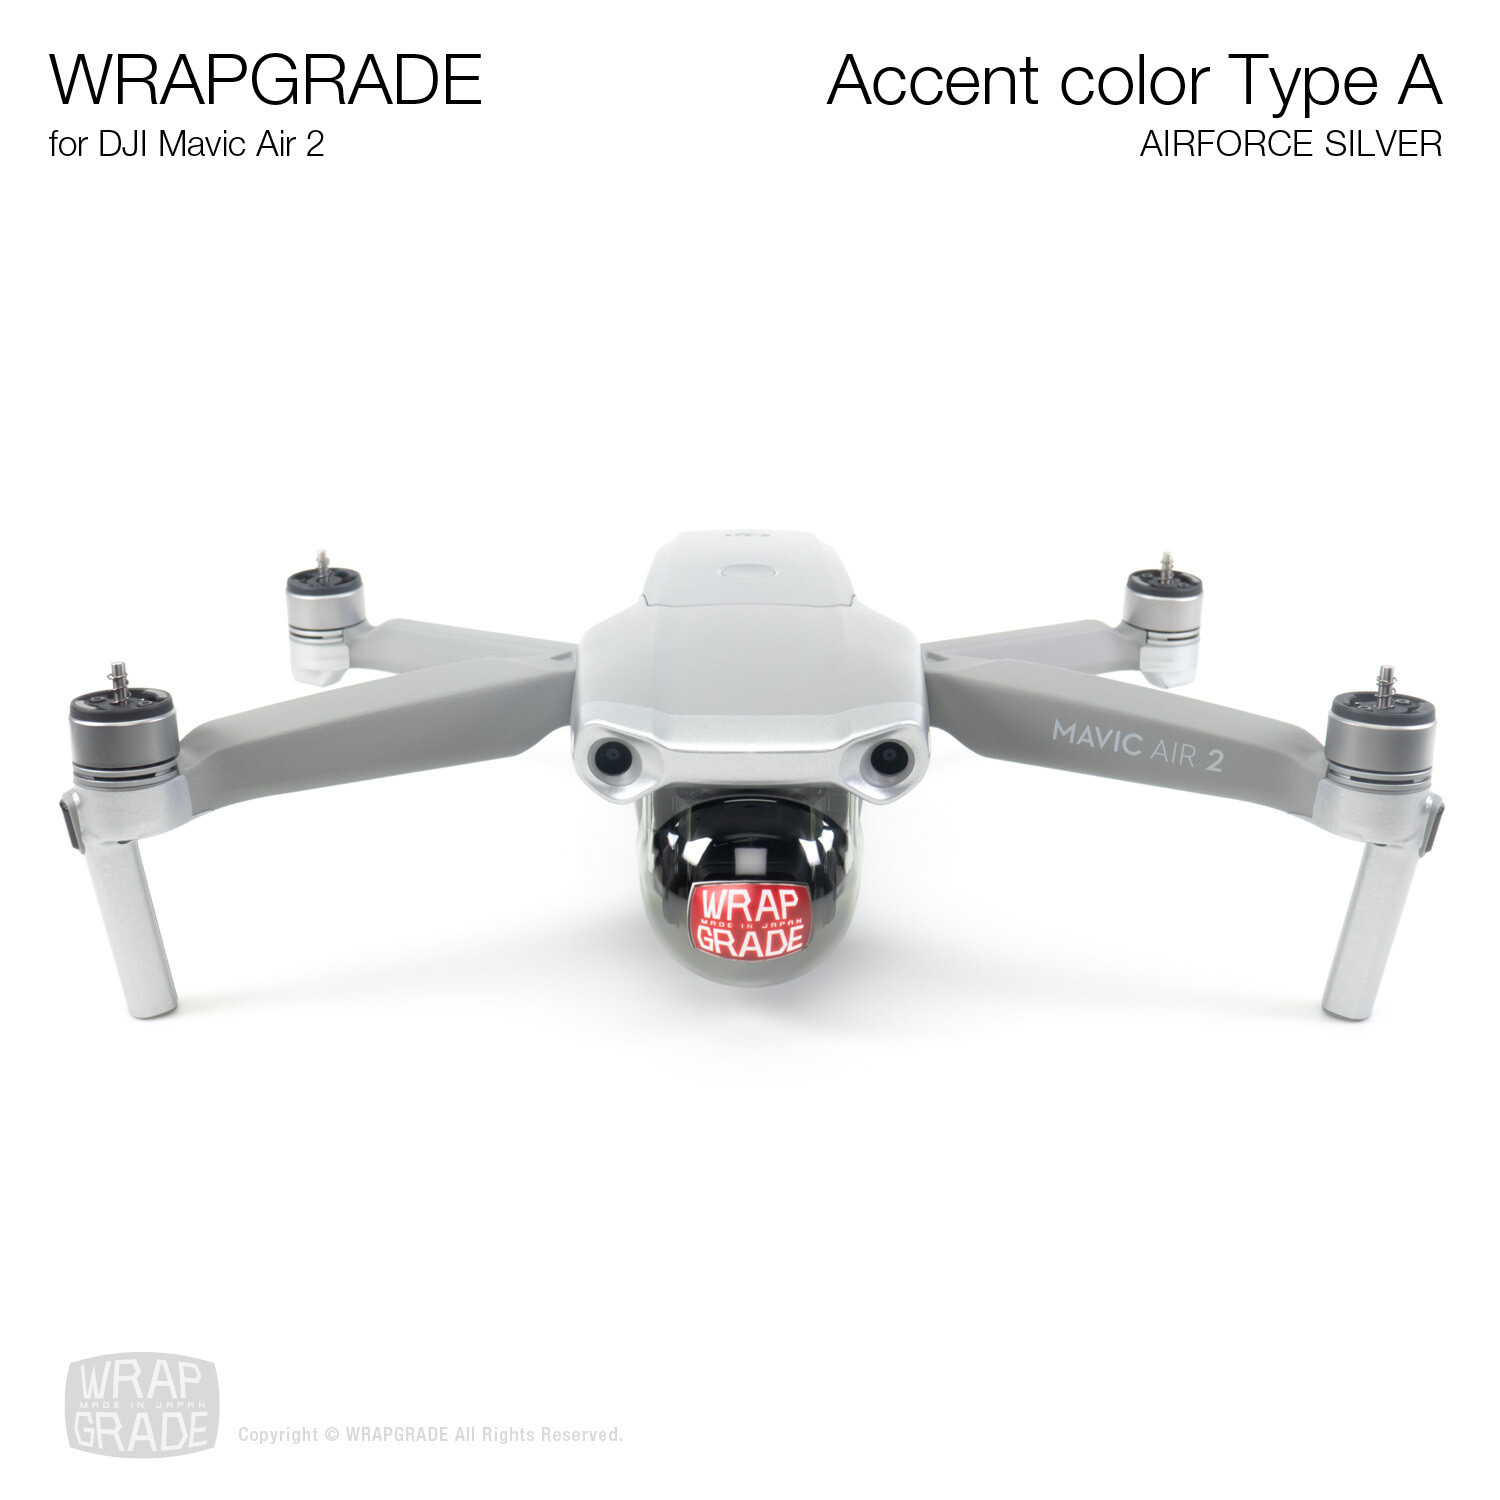 Wrapgrade for DJI Mavic Air 2   Accent Color A (AIRFORCE SILVER)